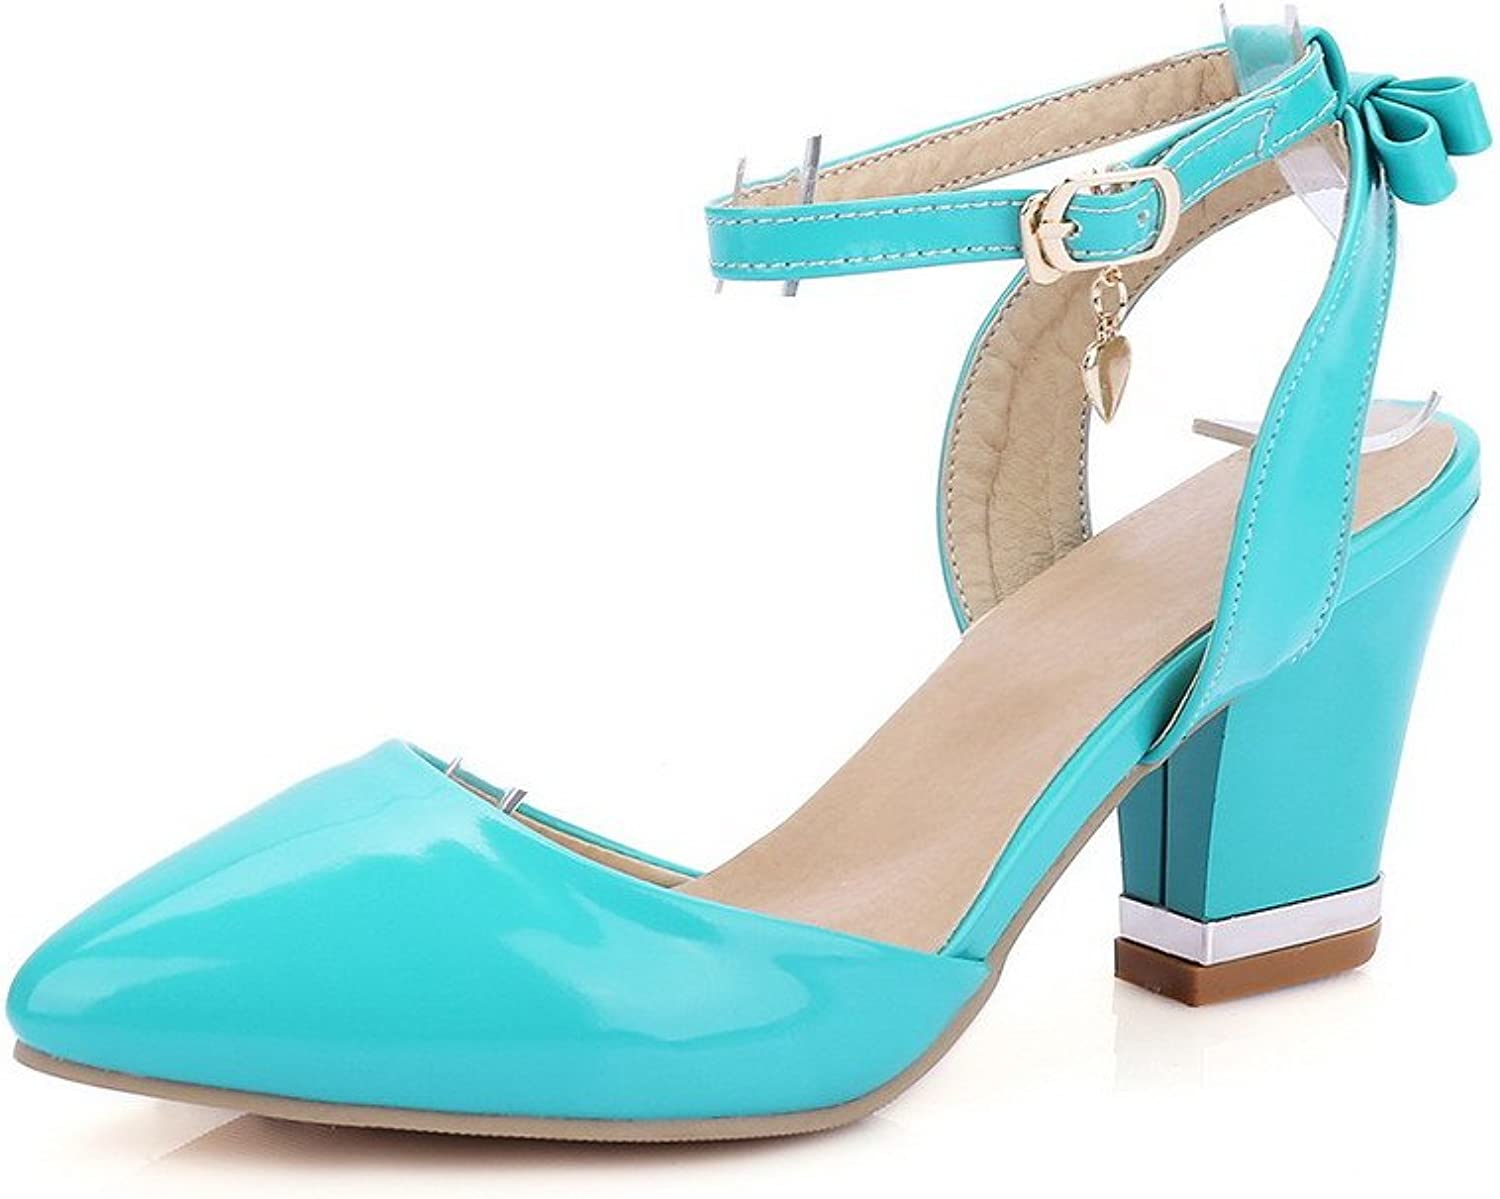 WeenFashion Women's Solid Patent Leather High Heels Closed Toe Buckle Sandals